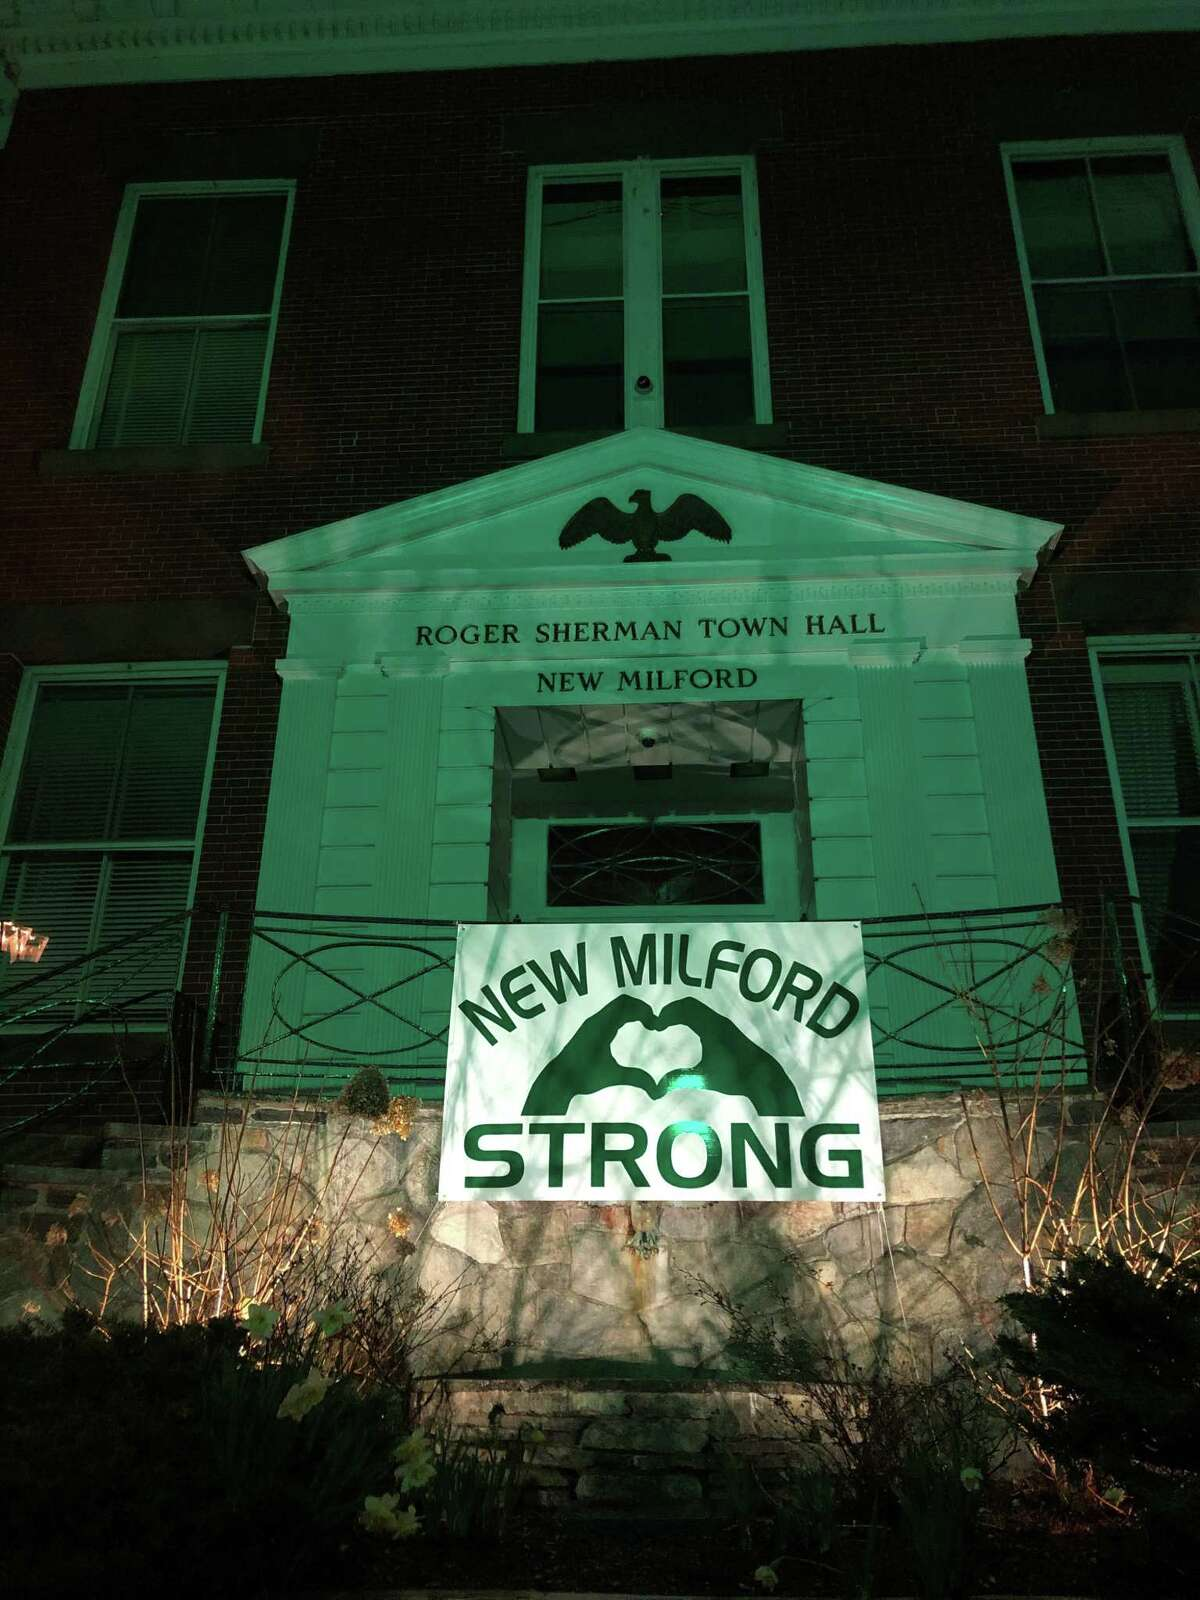 A message of hope and unity proudly hangs in front of the Roger Sherman Town Hall in New Milford.